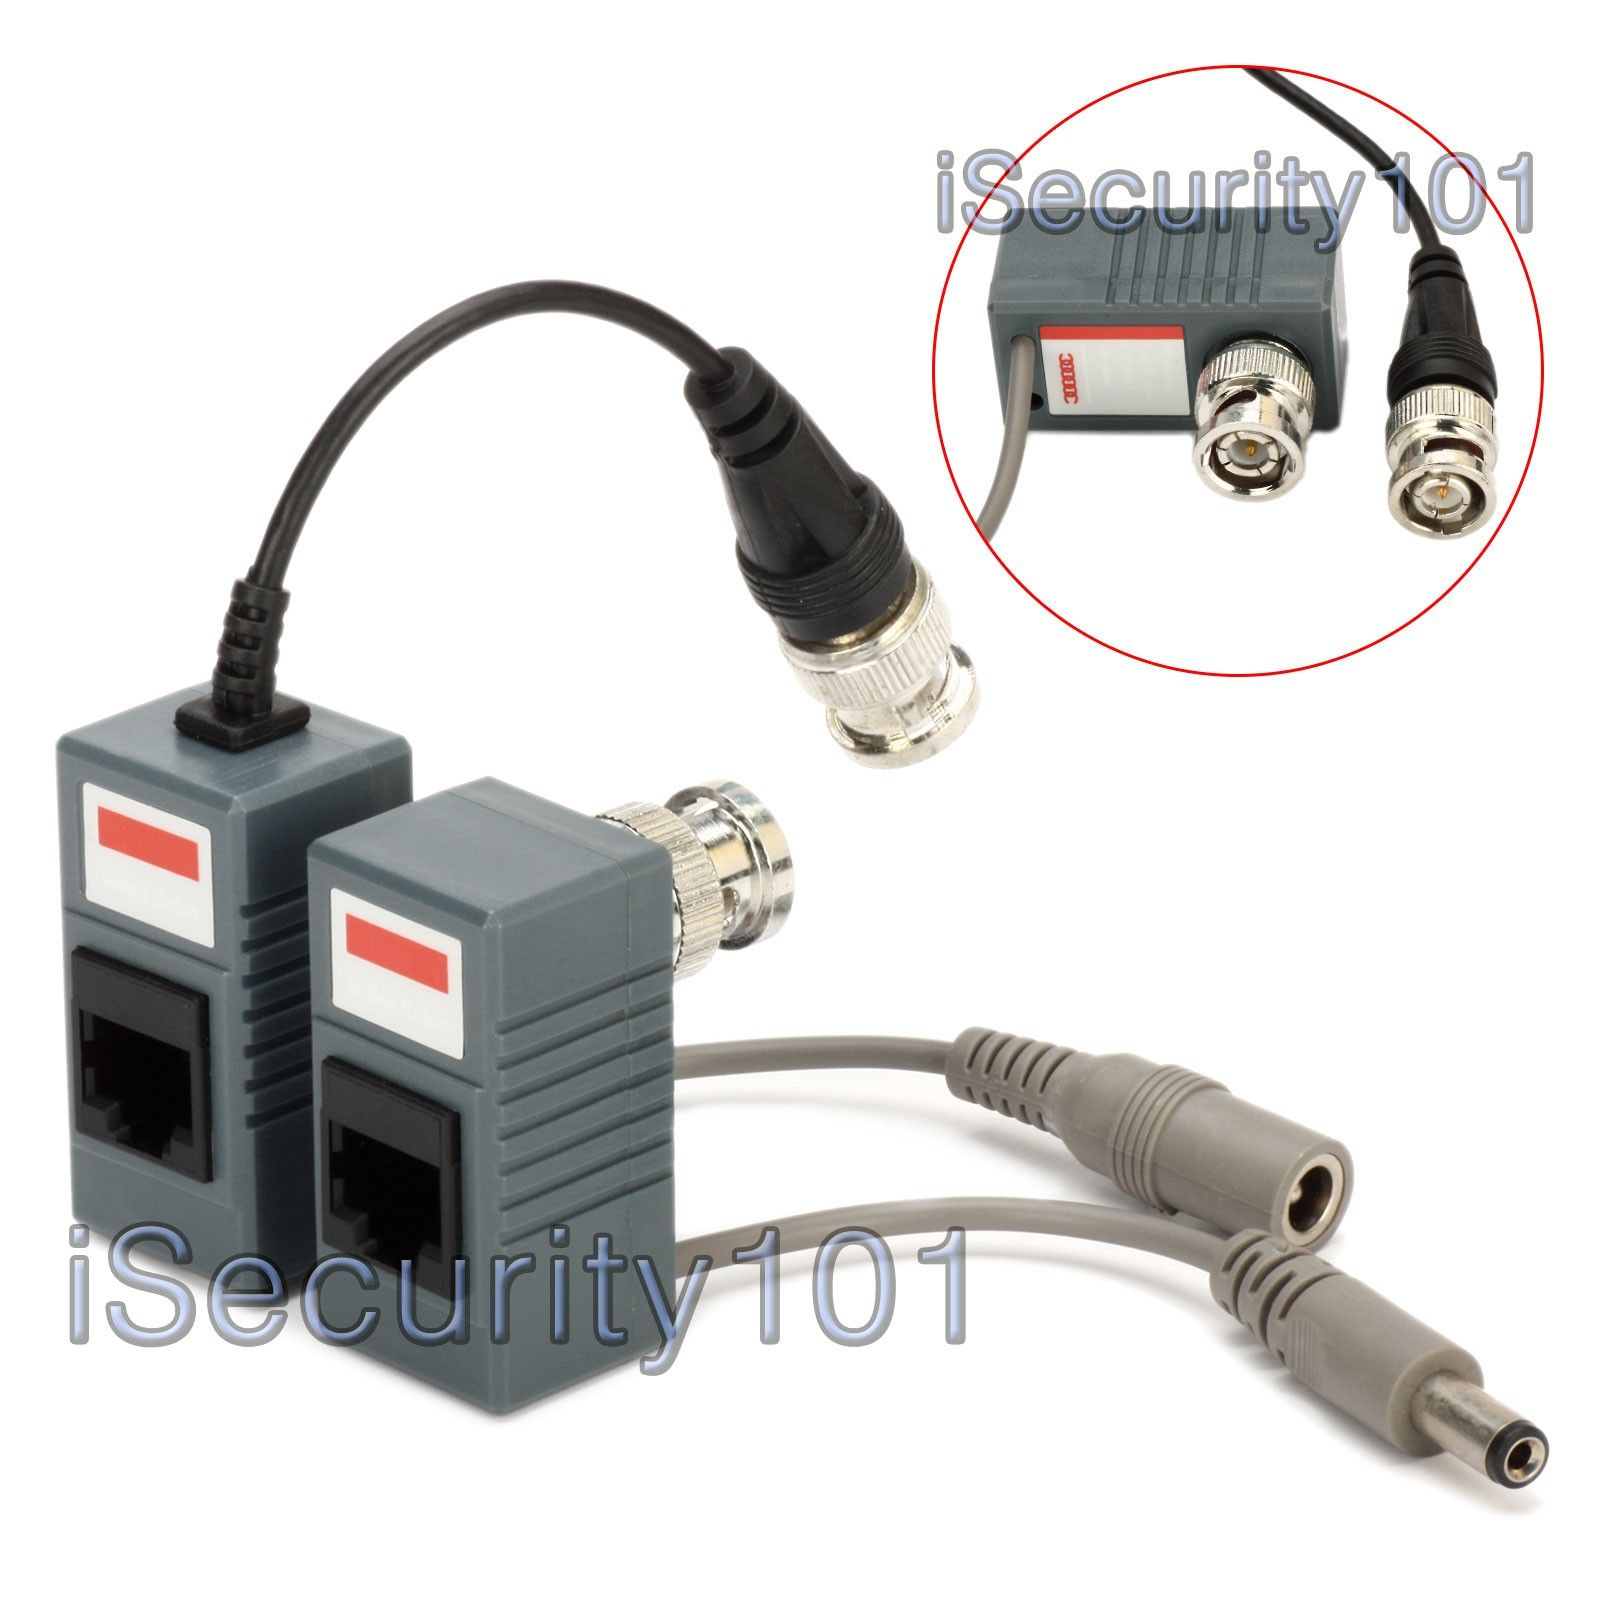 Cctv Balun Wiring Diagram Isecurity101 1 Pair Bnc To Rj45 Cat5 Throughout